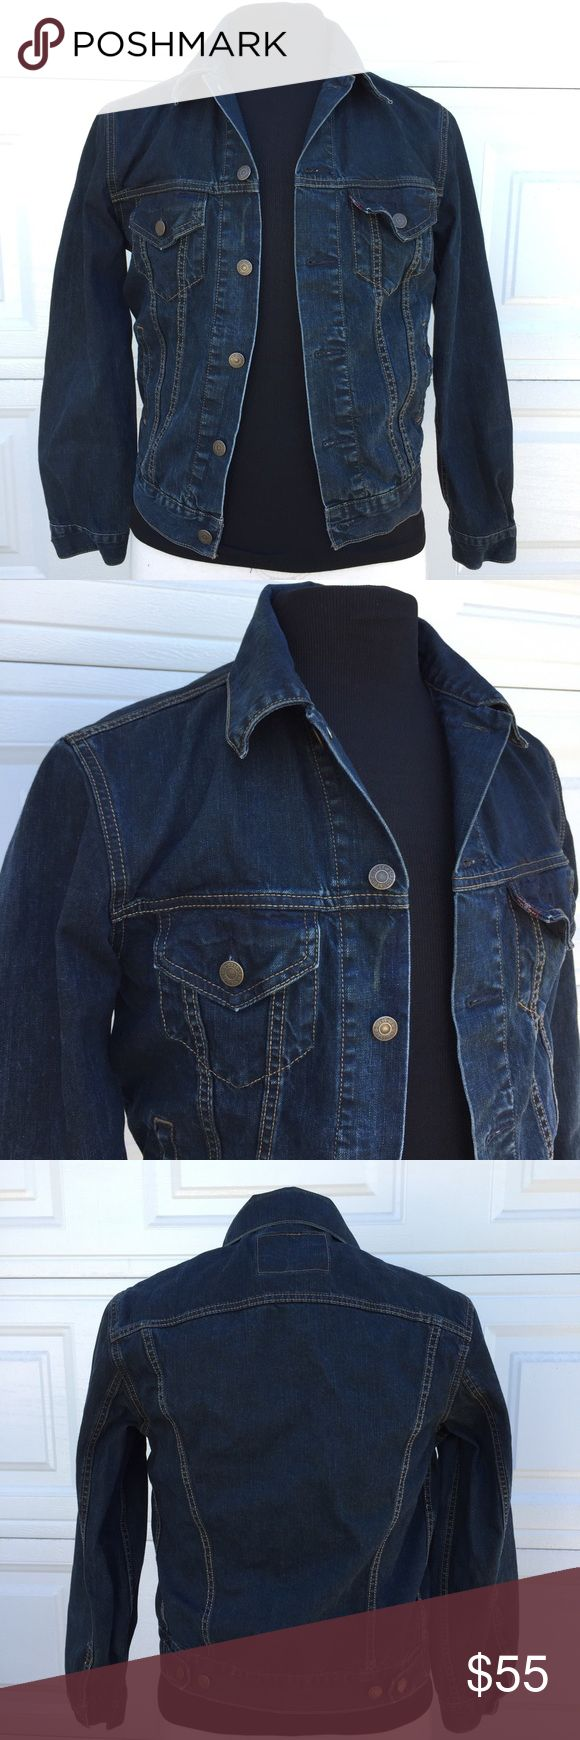 LEVI'S Men's Jean Jacket button up size Small You're purchasing a Mens LEVI'S jean button up jacket. Medium to Dark Wash. Pre-Owned in good condition. Size Small. See pics for measurements. Levi's Jackets & Coats Lightweight & Shirt Jackets